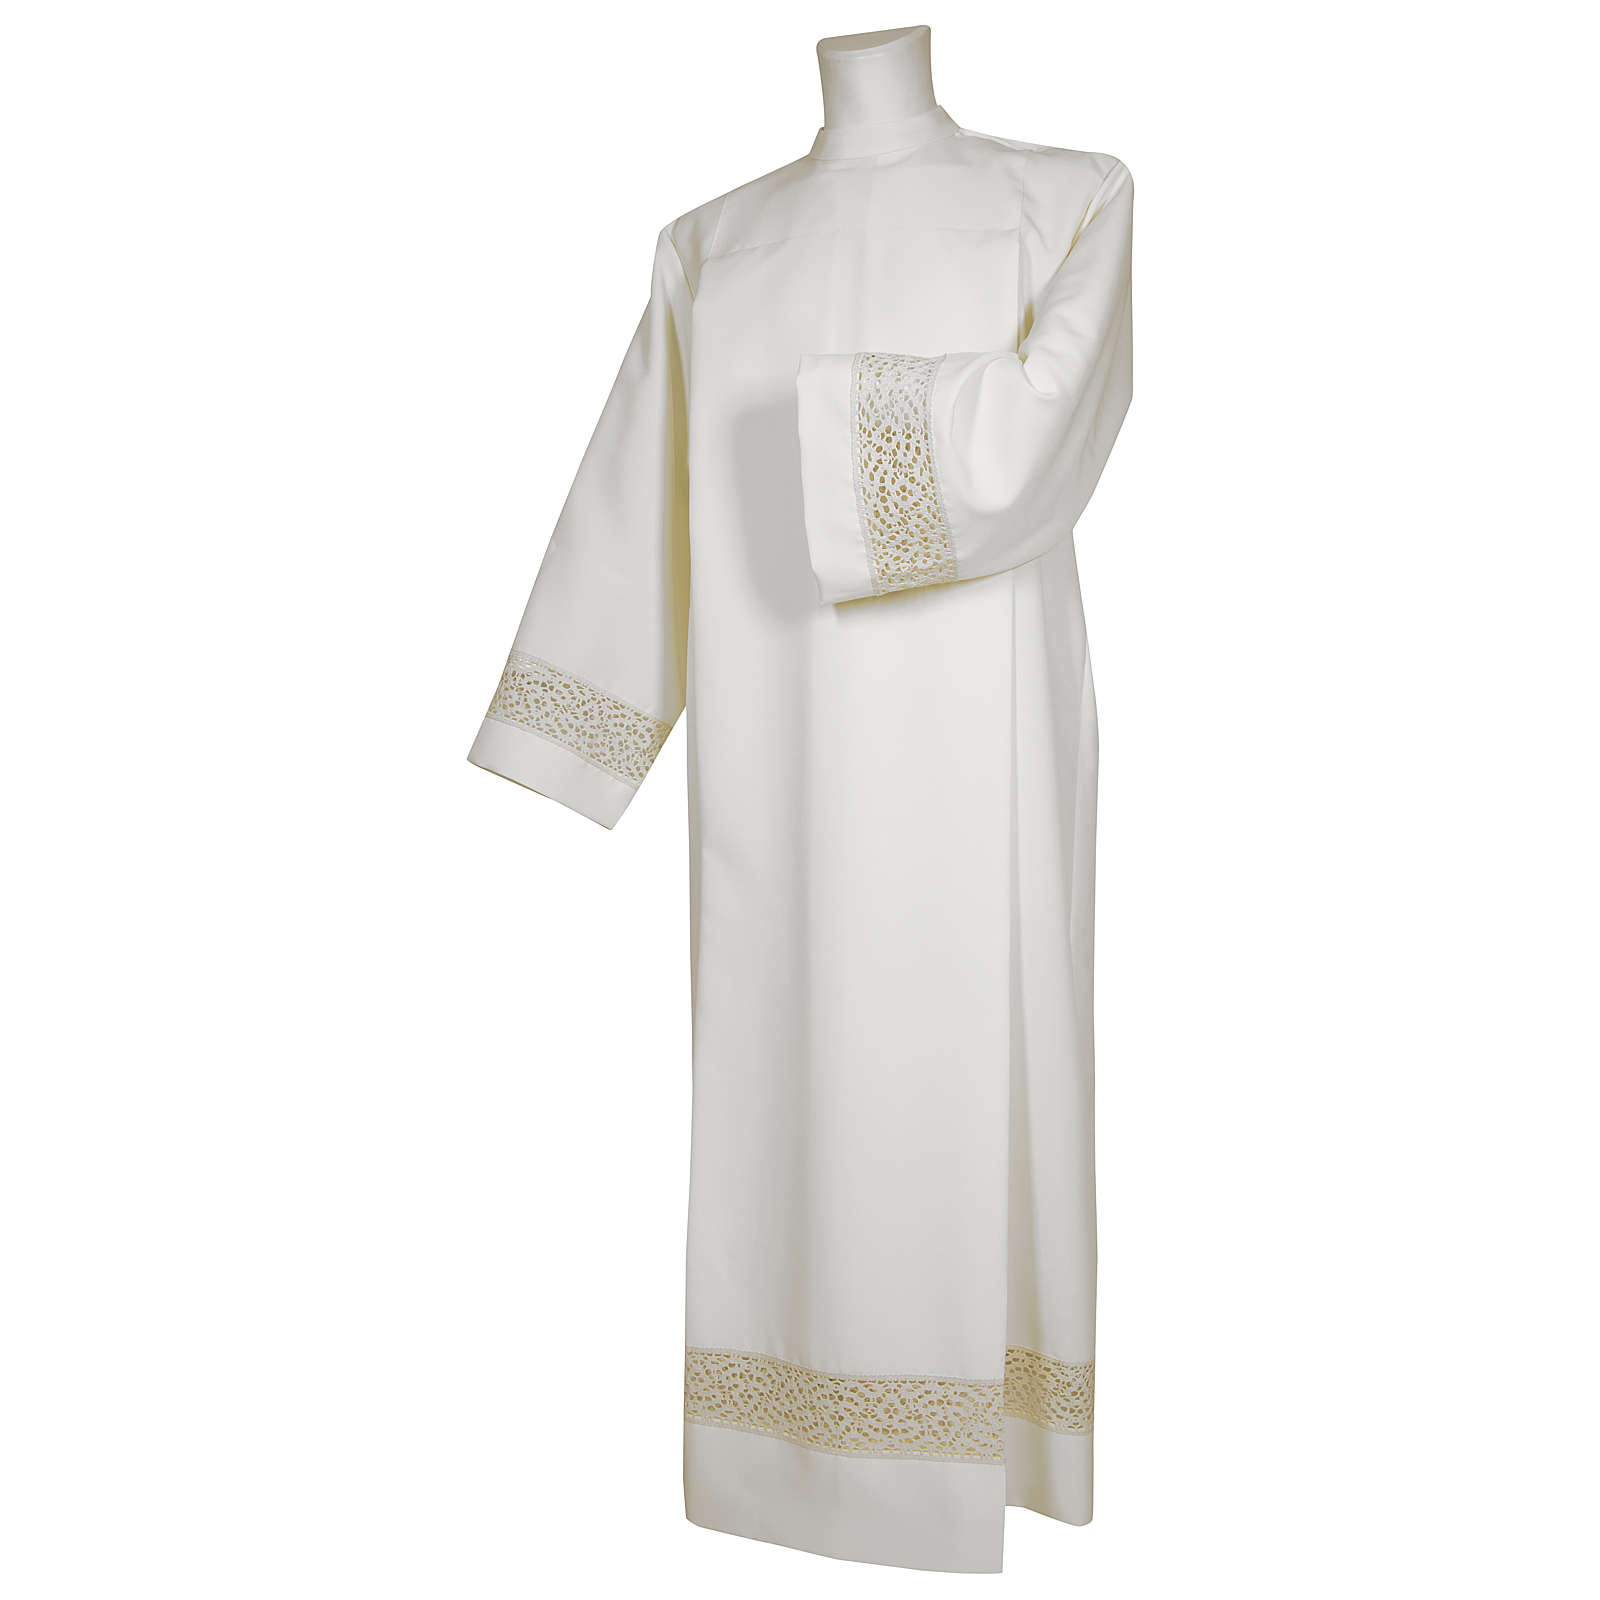 White alb 65% polyester 35% cotton with golden lace and crochet partition and zip on shoulder 4